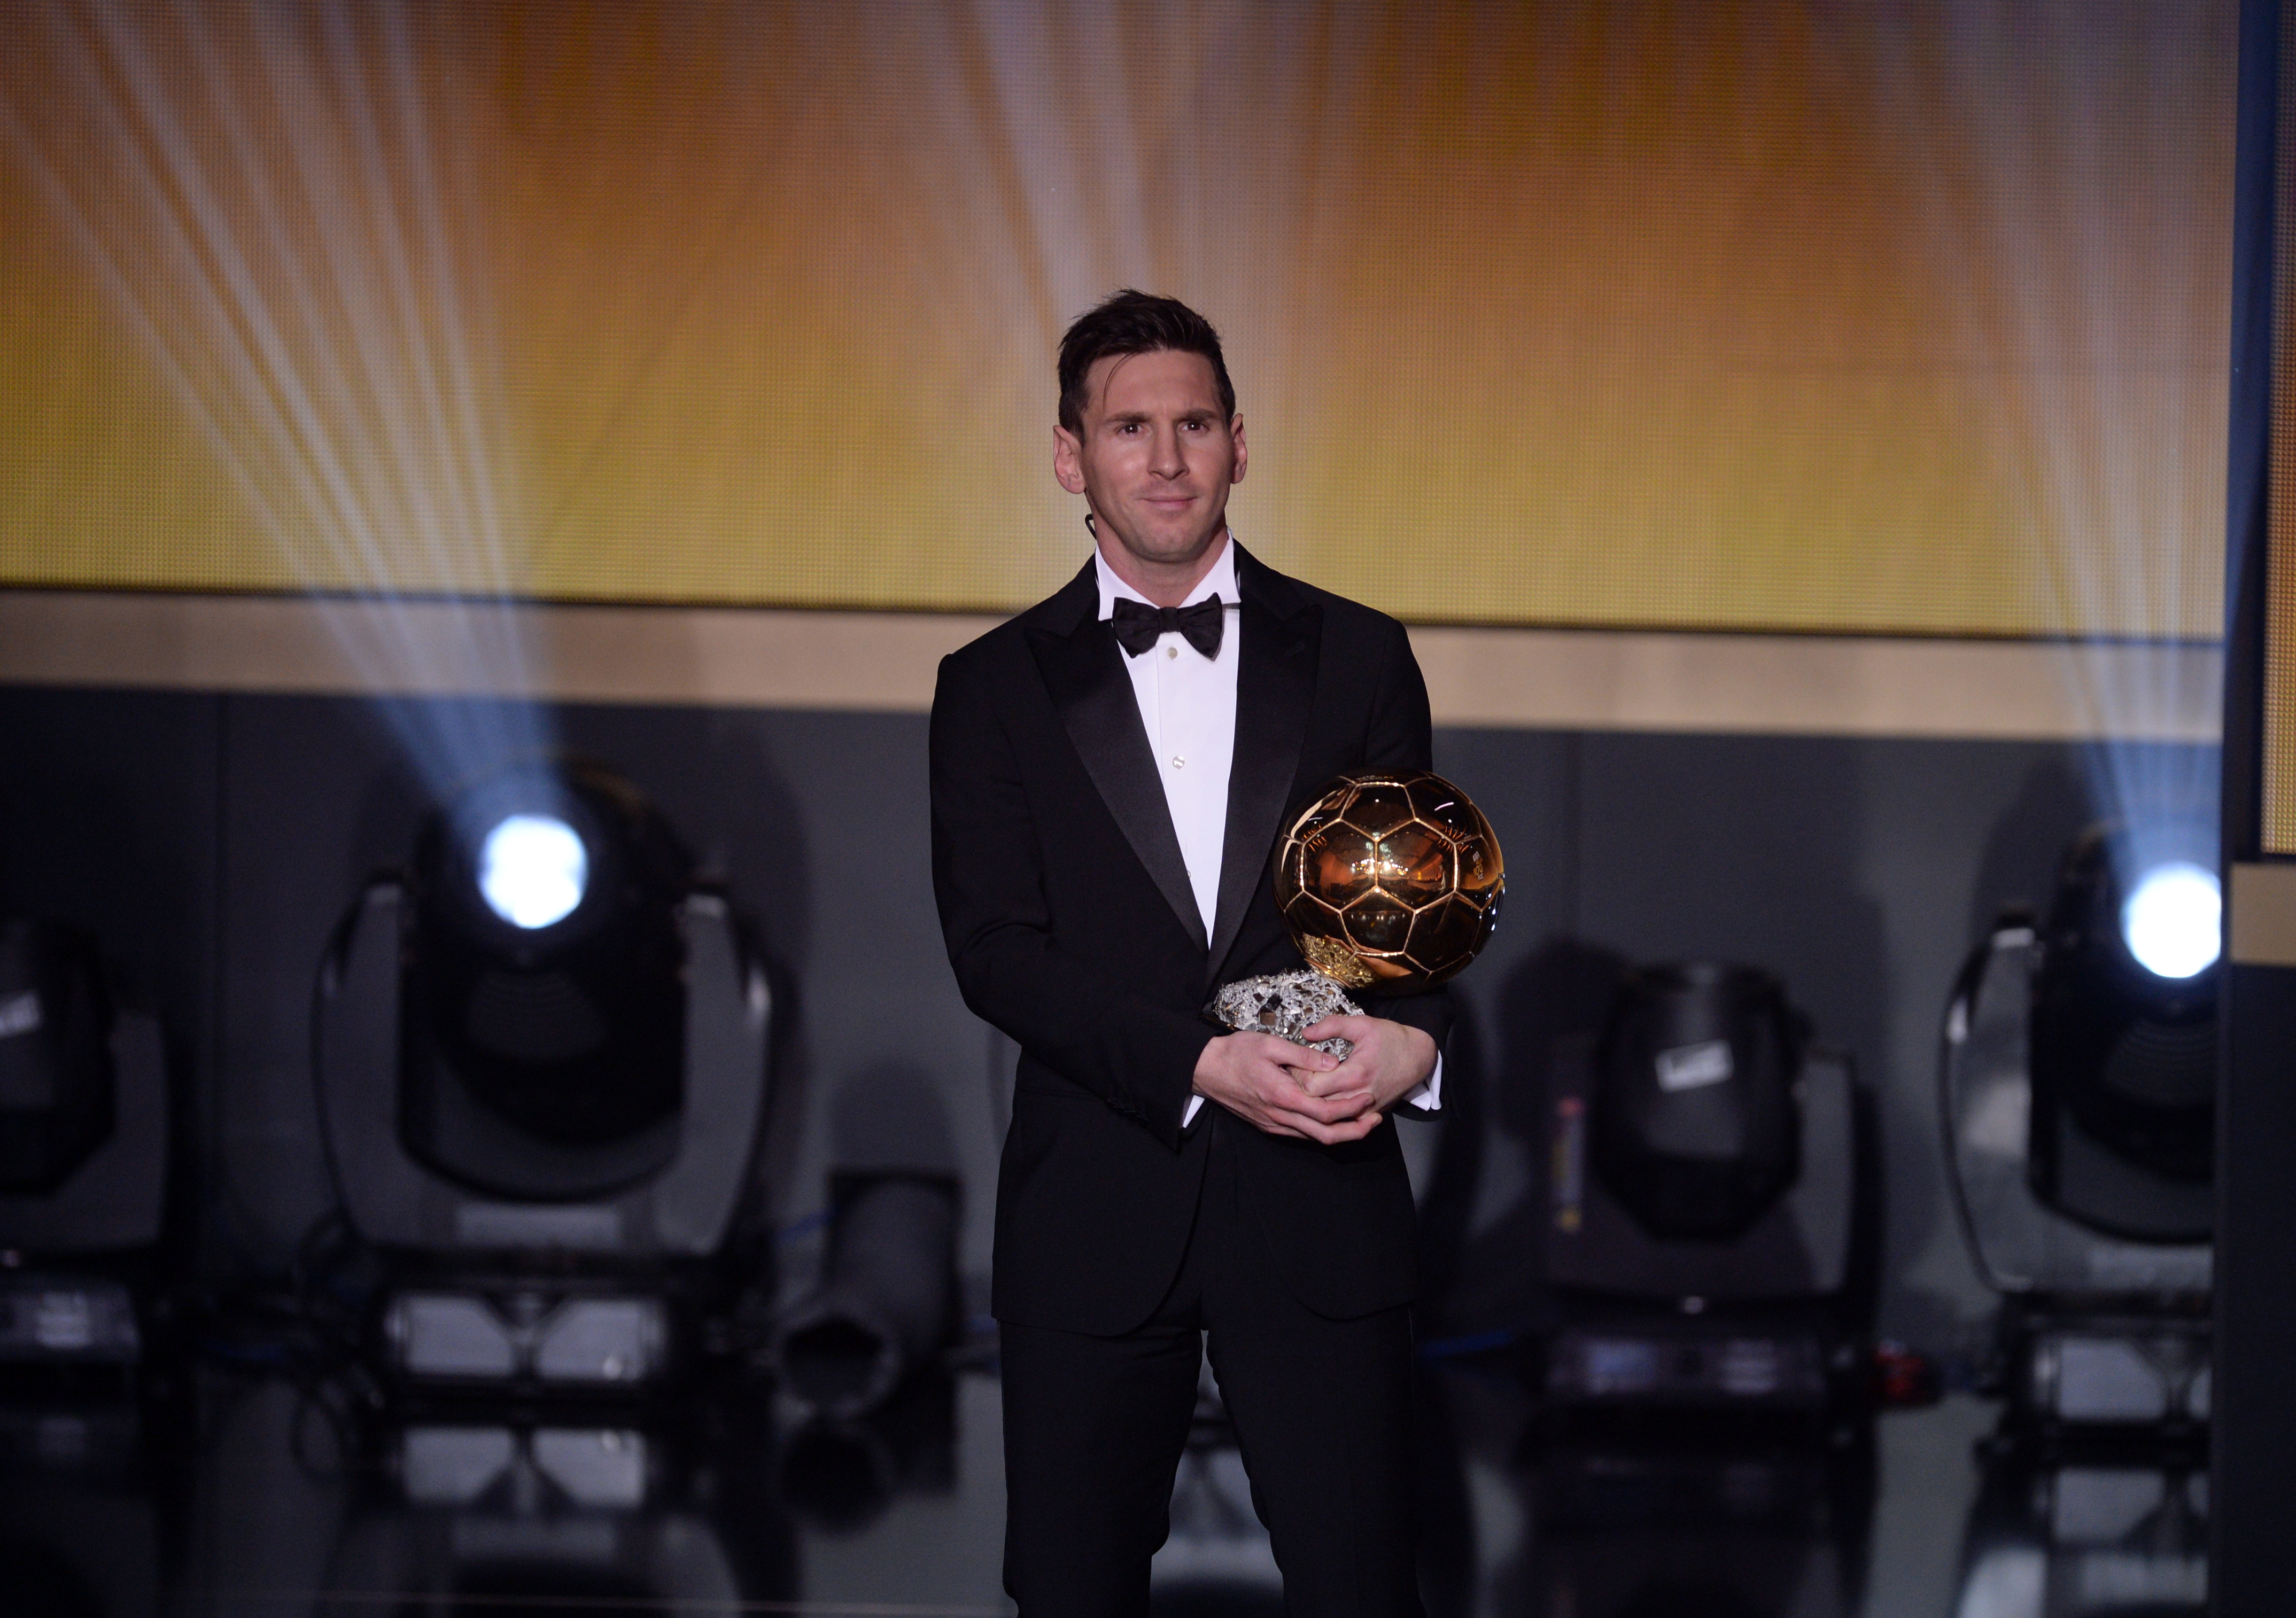 Messi has won the Ballon d'Or a record five times. Image: PA Images